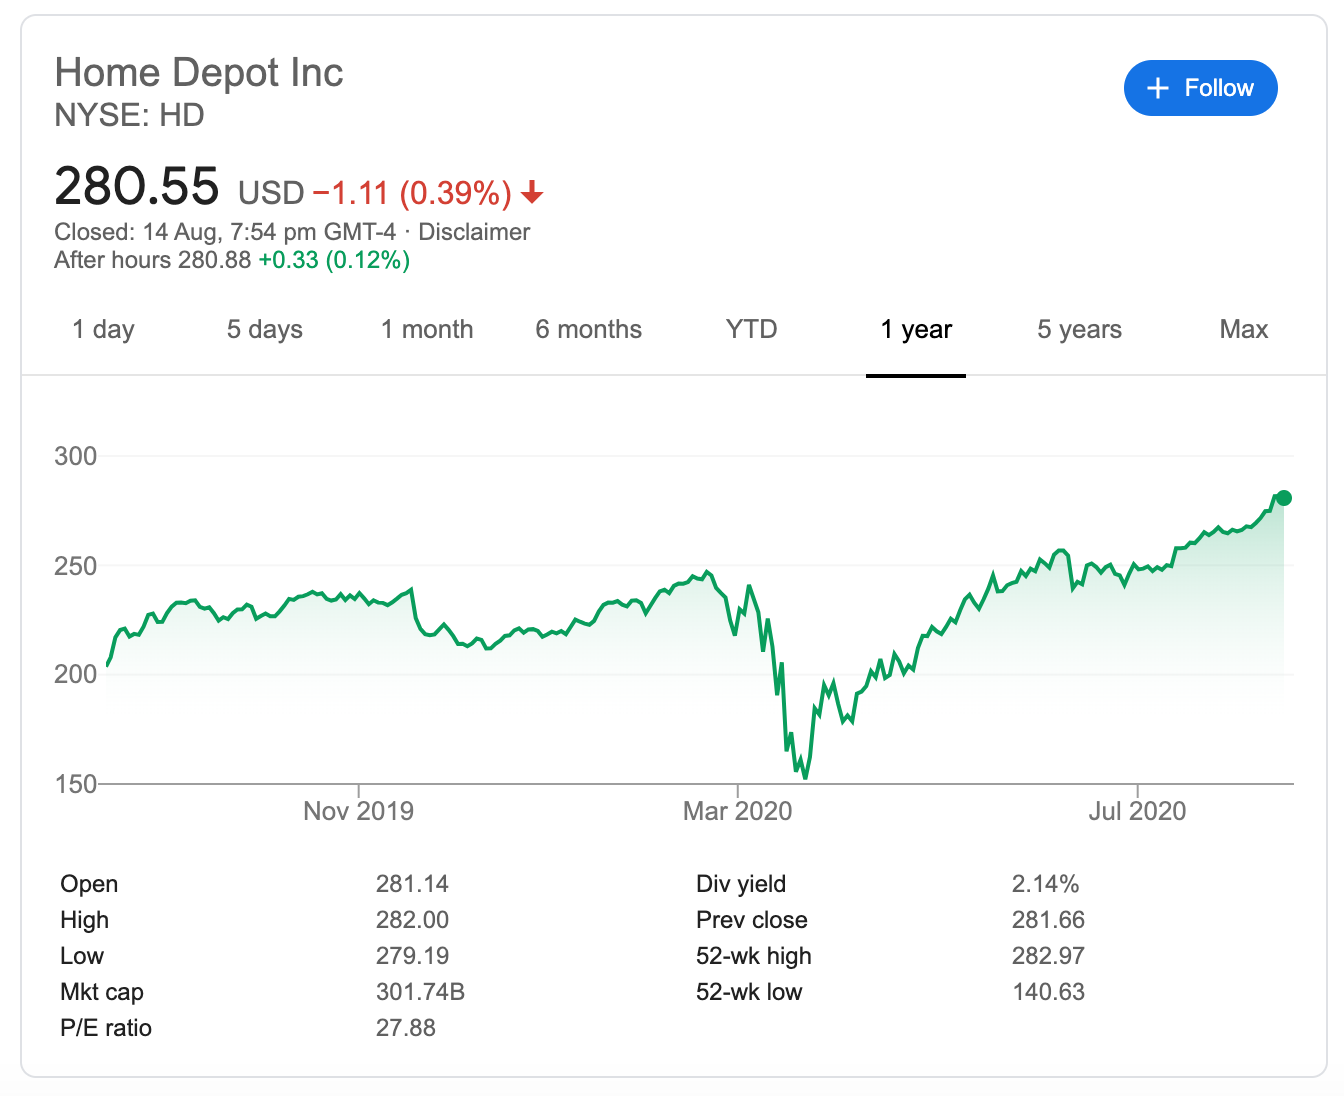 Home Depot's stock price is up 84% from the lows